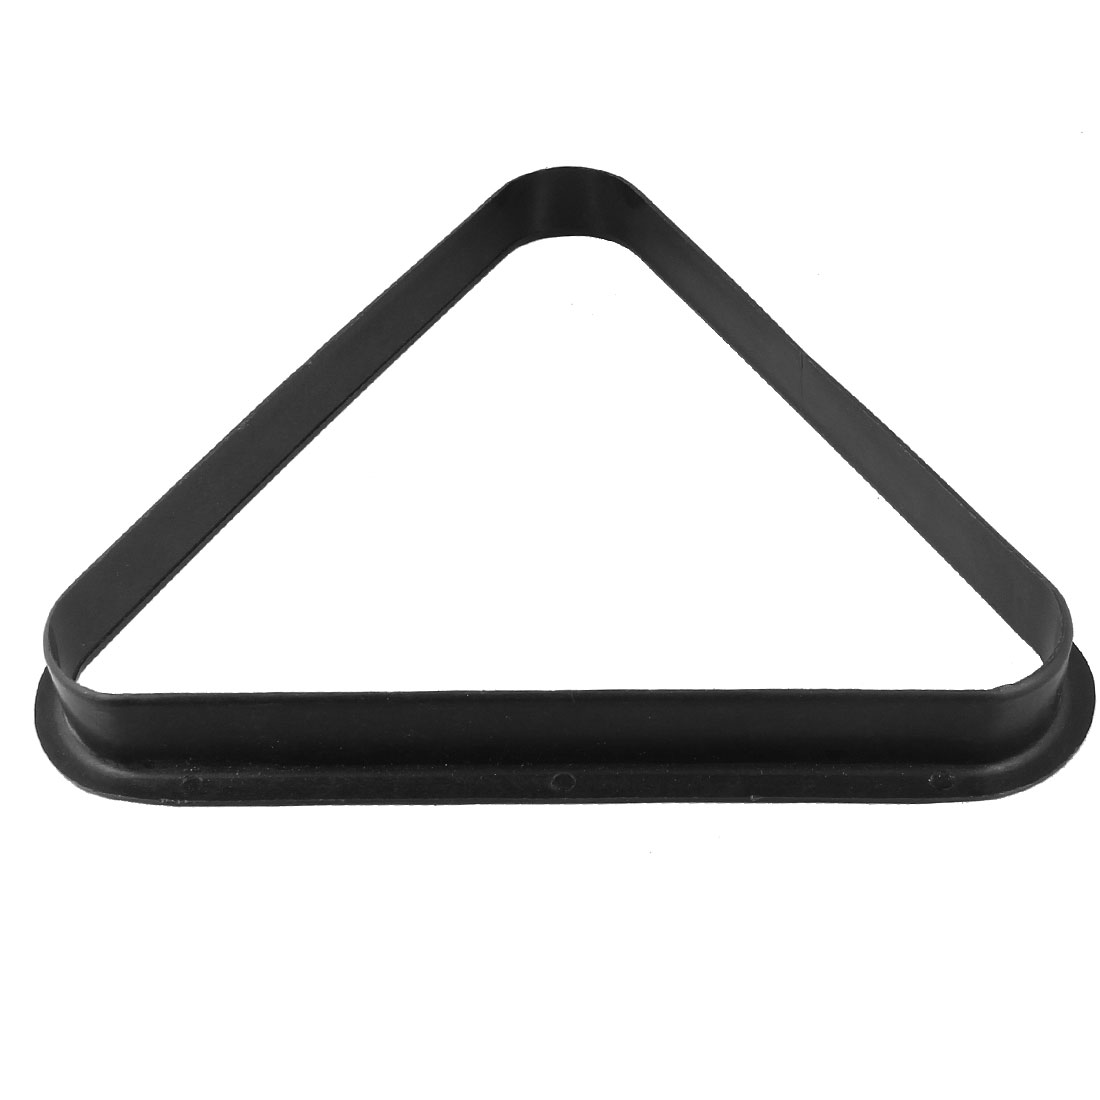 Black Plastic Triangle Billiard Pool Table 8 Balls Rack